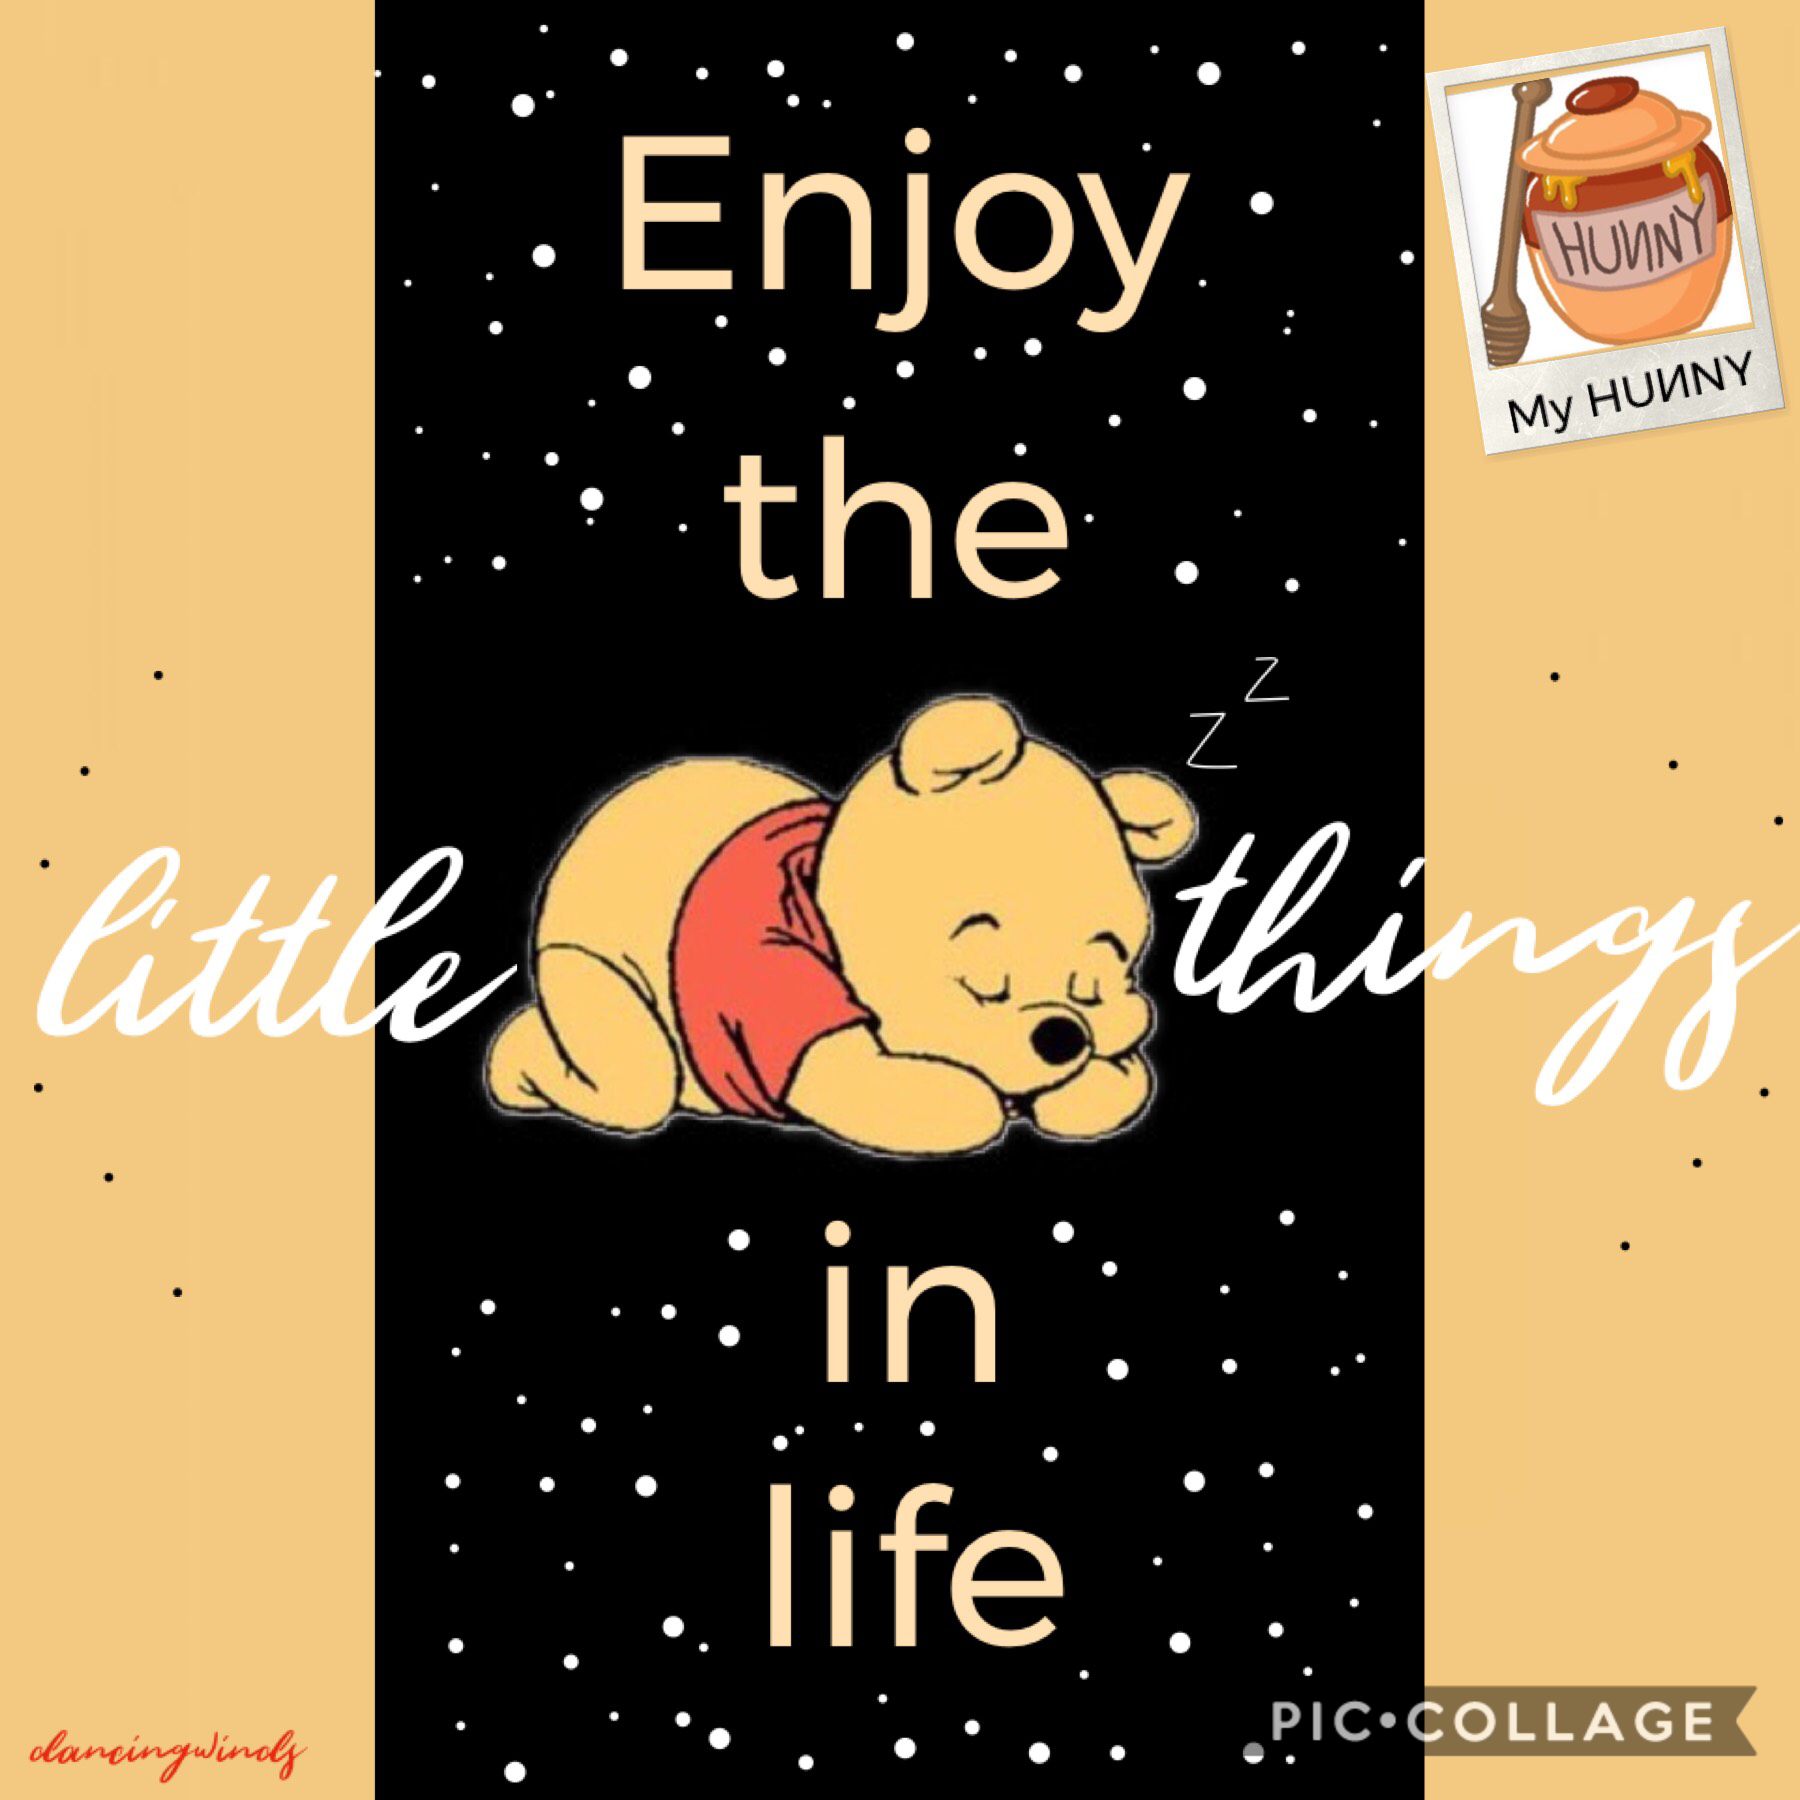 who else loves WINNIE THE POOH?!   just me...  thx for making me feel lonely 😂 🐻❤️💛🍯